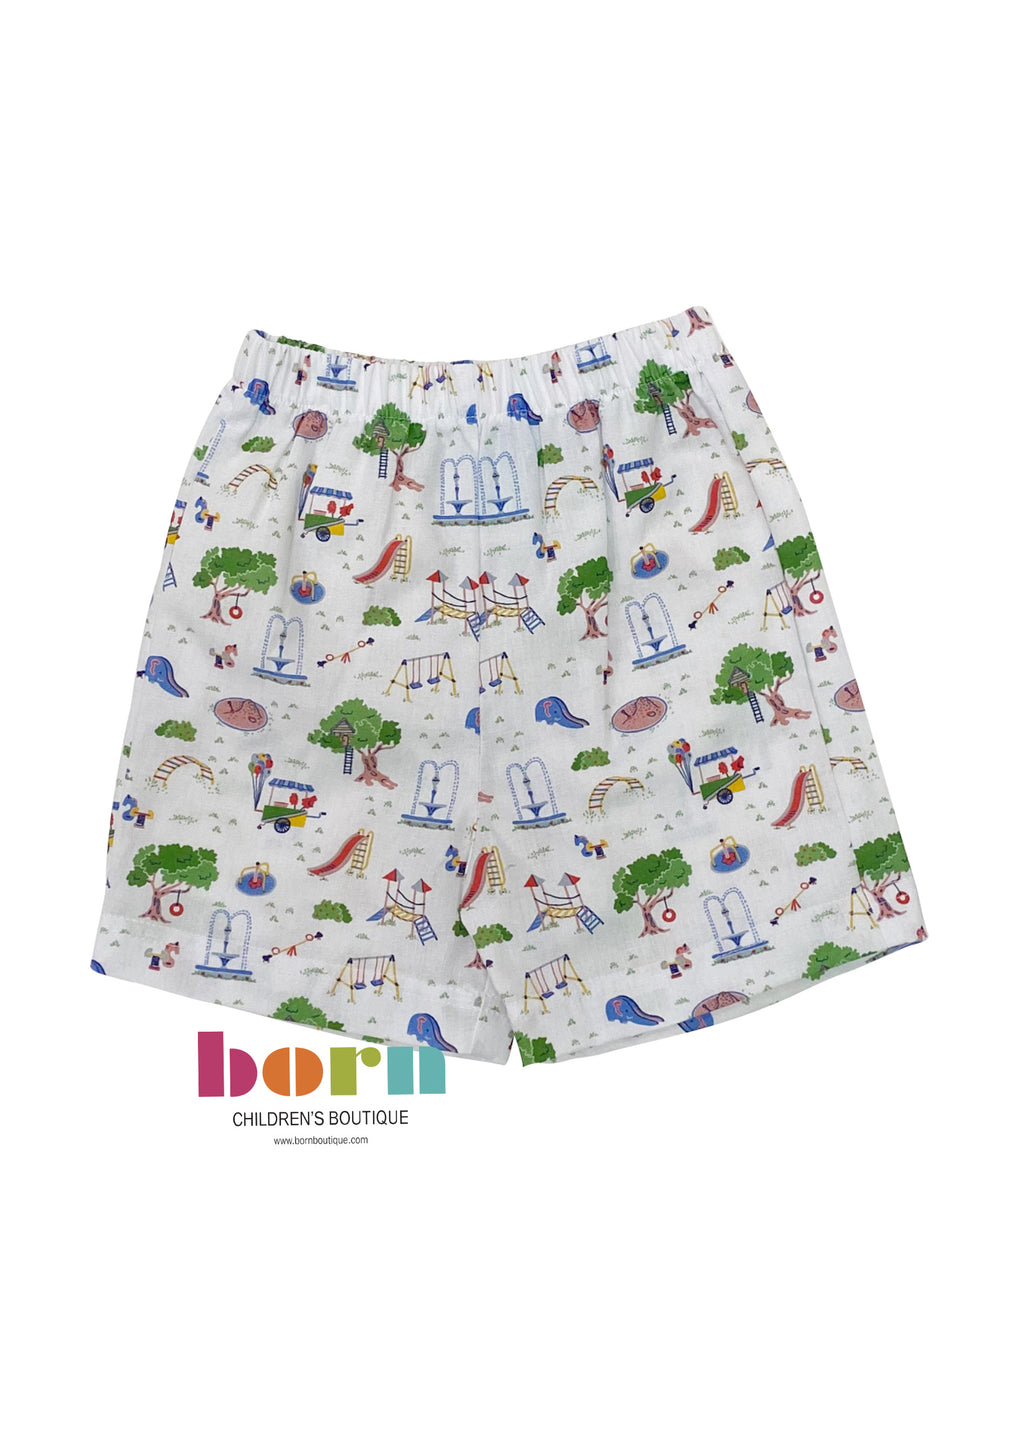 Boys Short - Playground Print - Born Childrens Boutique